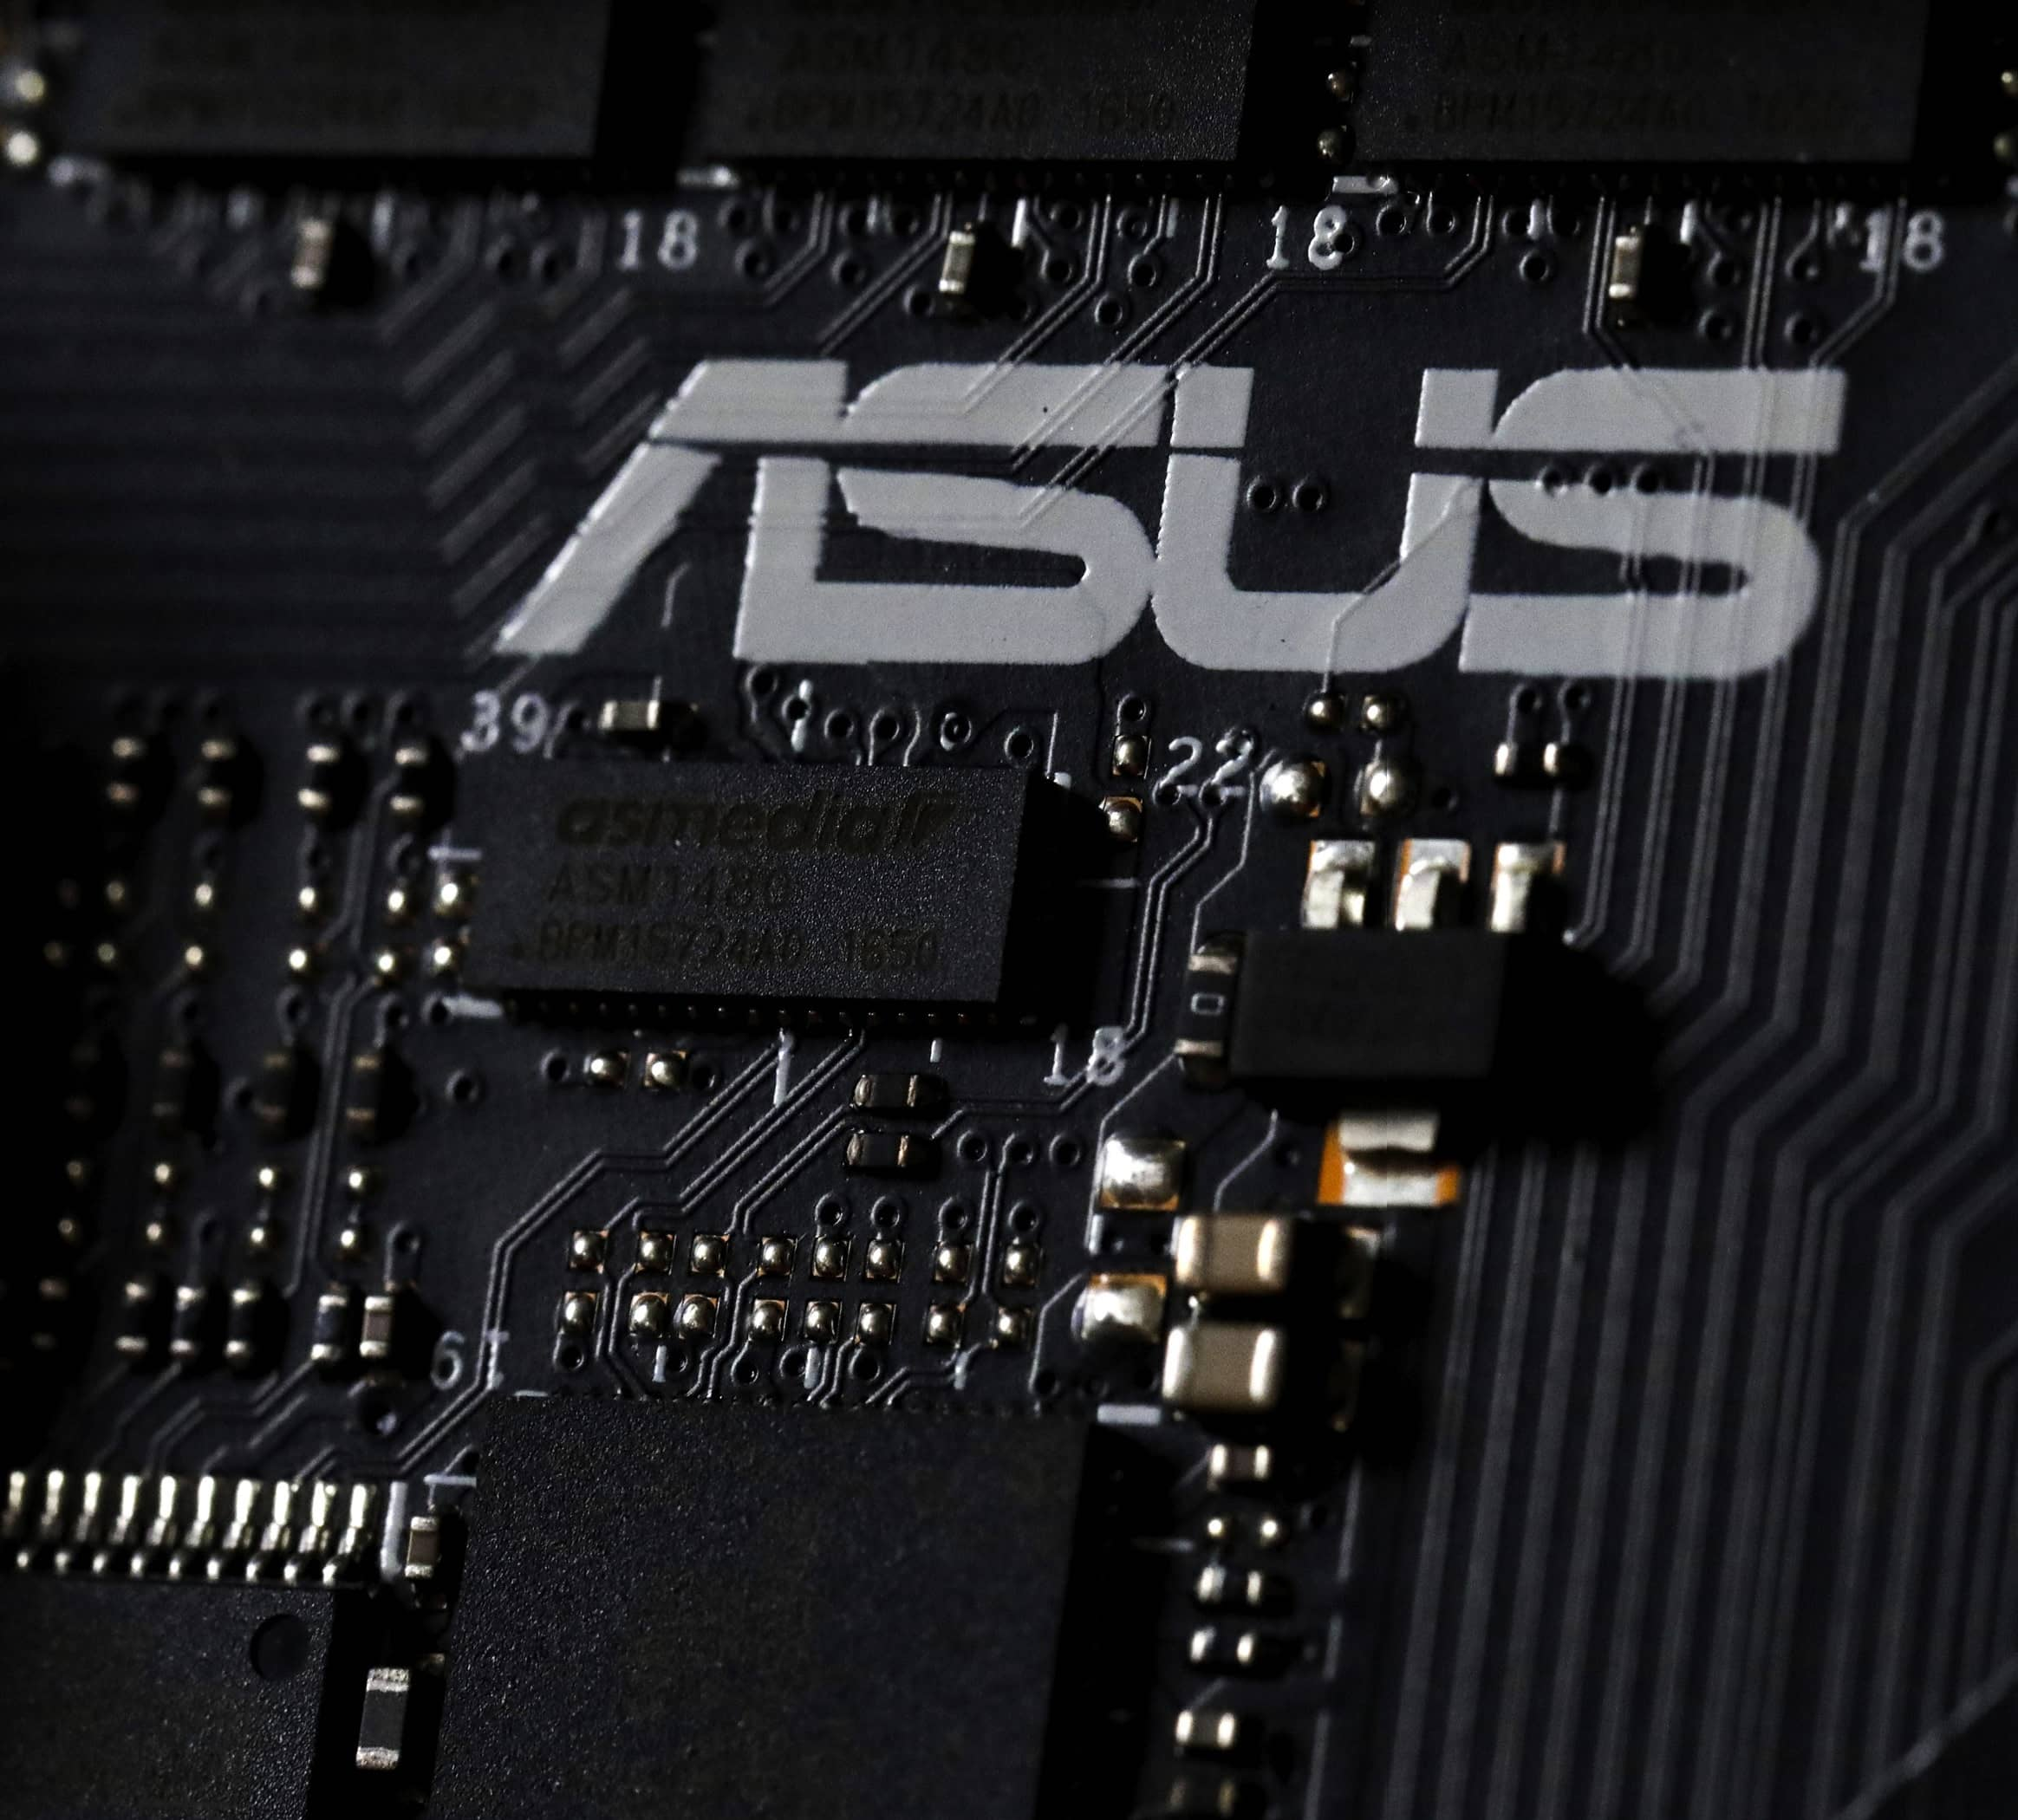 Asus Computers Infected By Auto-update Virus